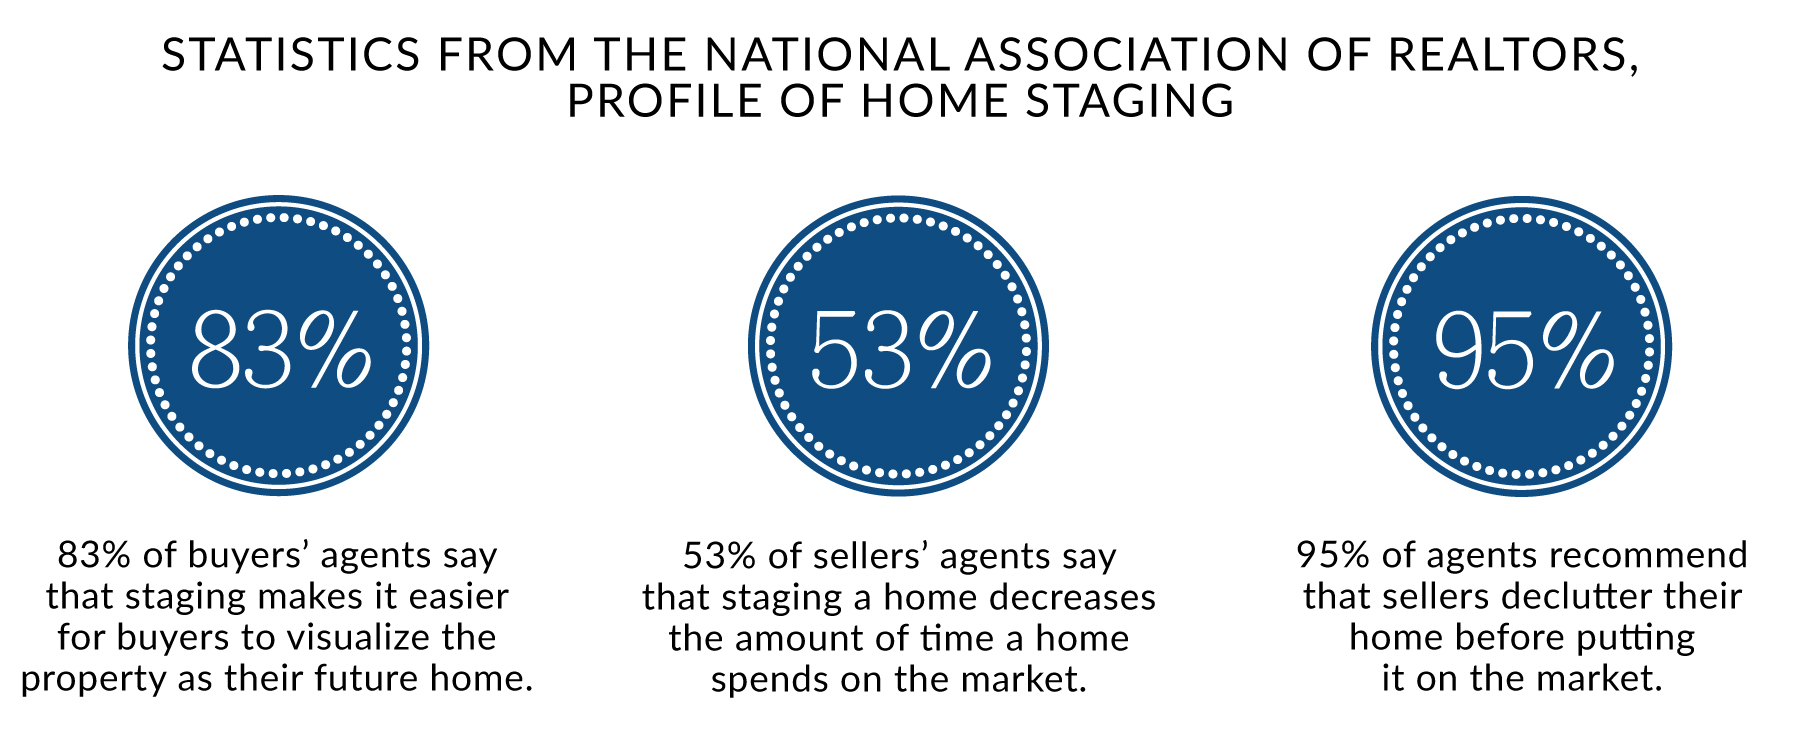 Graphic from the National Association of Realtors on the statistics behind home staging